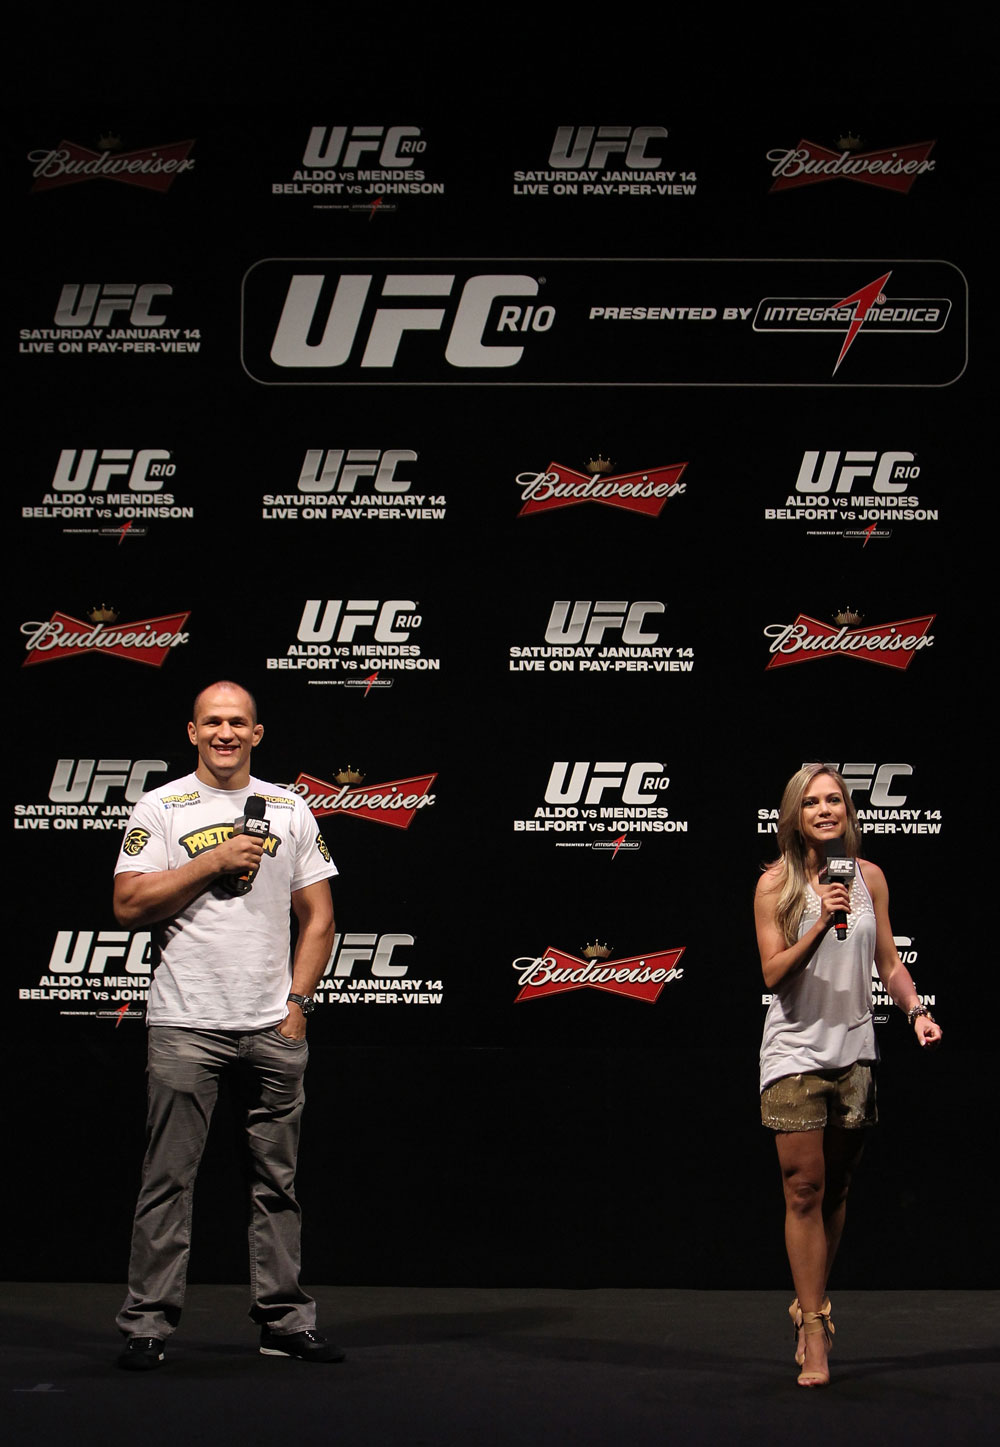 RIO DE JANEIRO, BRAZIL - JANUARY 13:  (L-R) UFC Heavyweight Champion Junior dos Santos and UFC host Paula Sack interact with fans during a Q&A session before the UFC 142 Weigh In at HSBC Arena on January 13, 2012 in Rio de Janeiro, Brazil.  (Photo by Josh Hedges/Zuffa LLC/Zuffa LLC via Getty Images)